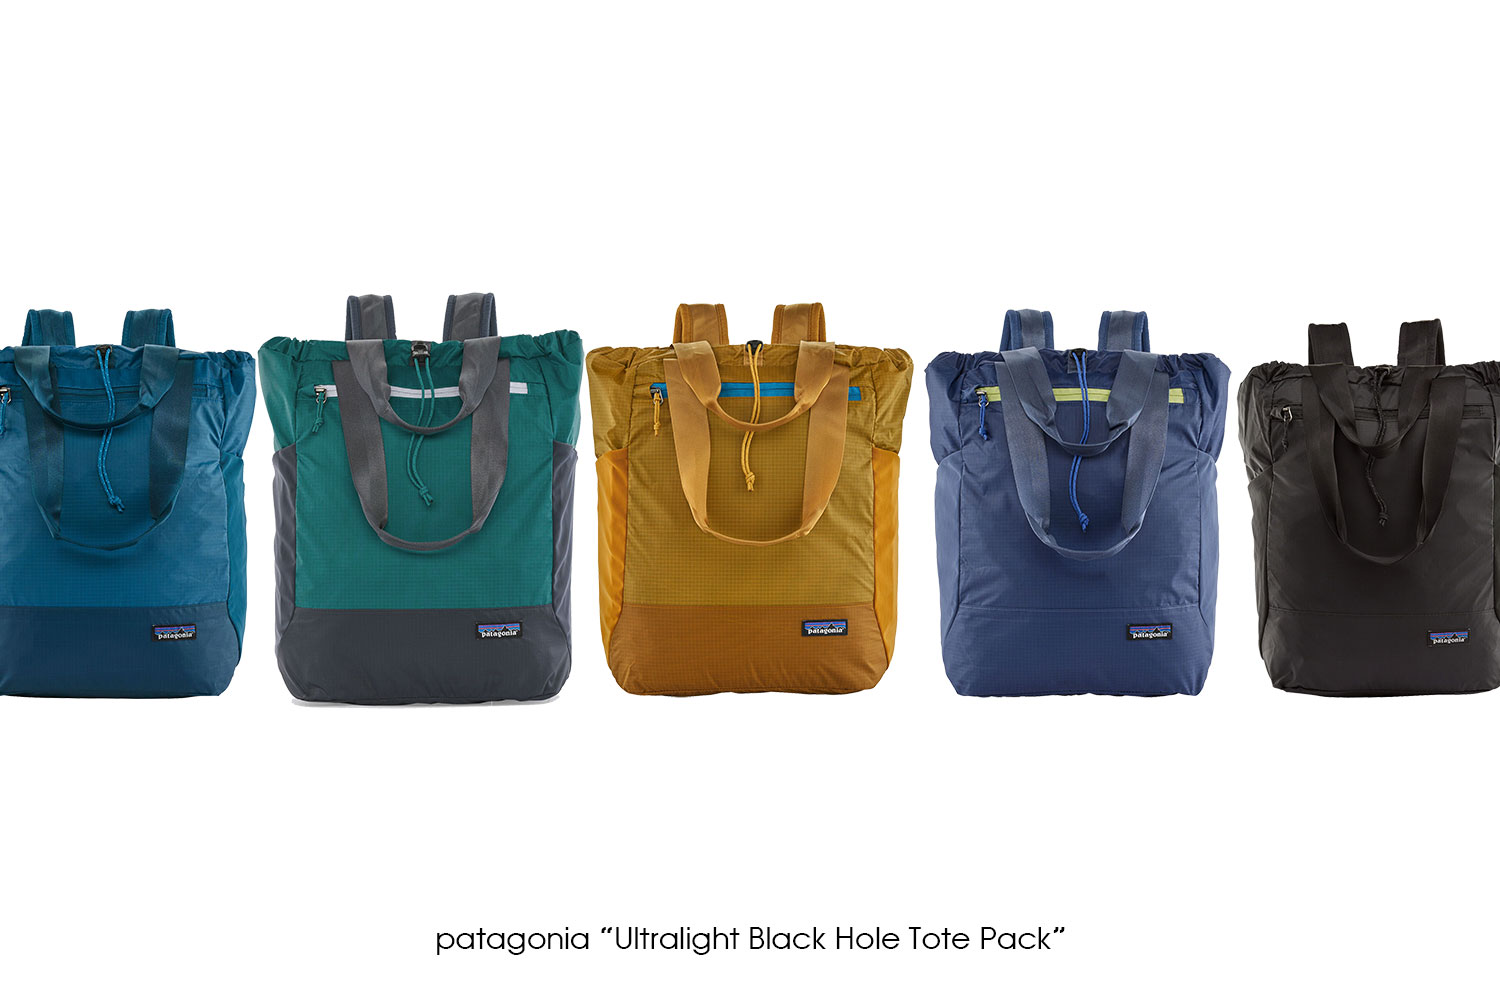 """patagonia """"Ultralight Black Hole Tote Pack"""""""